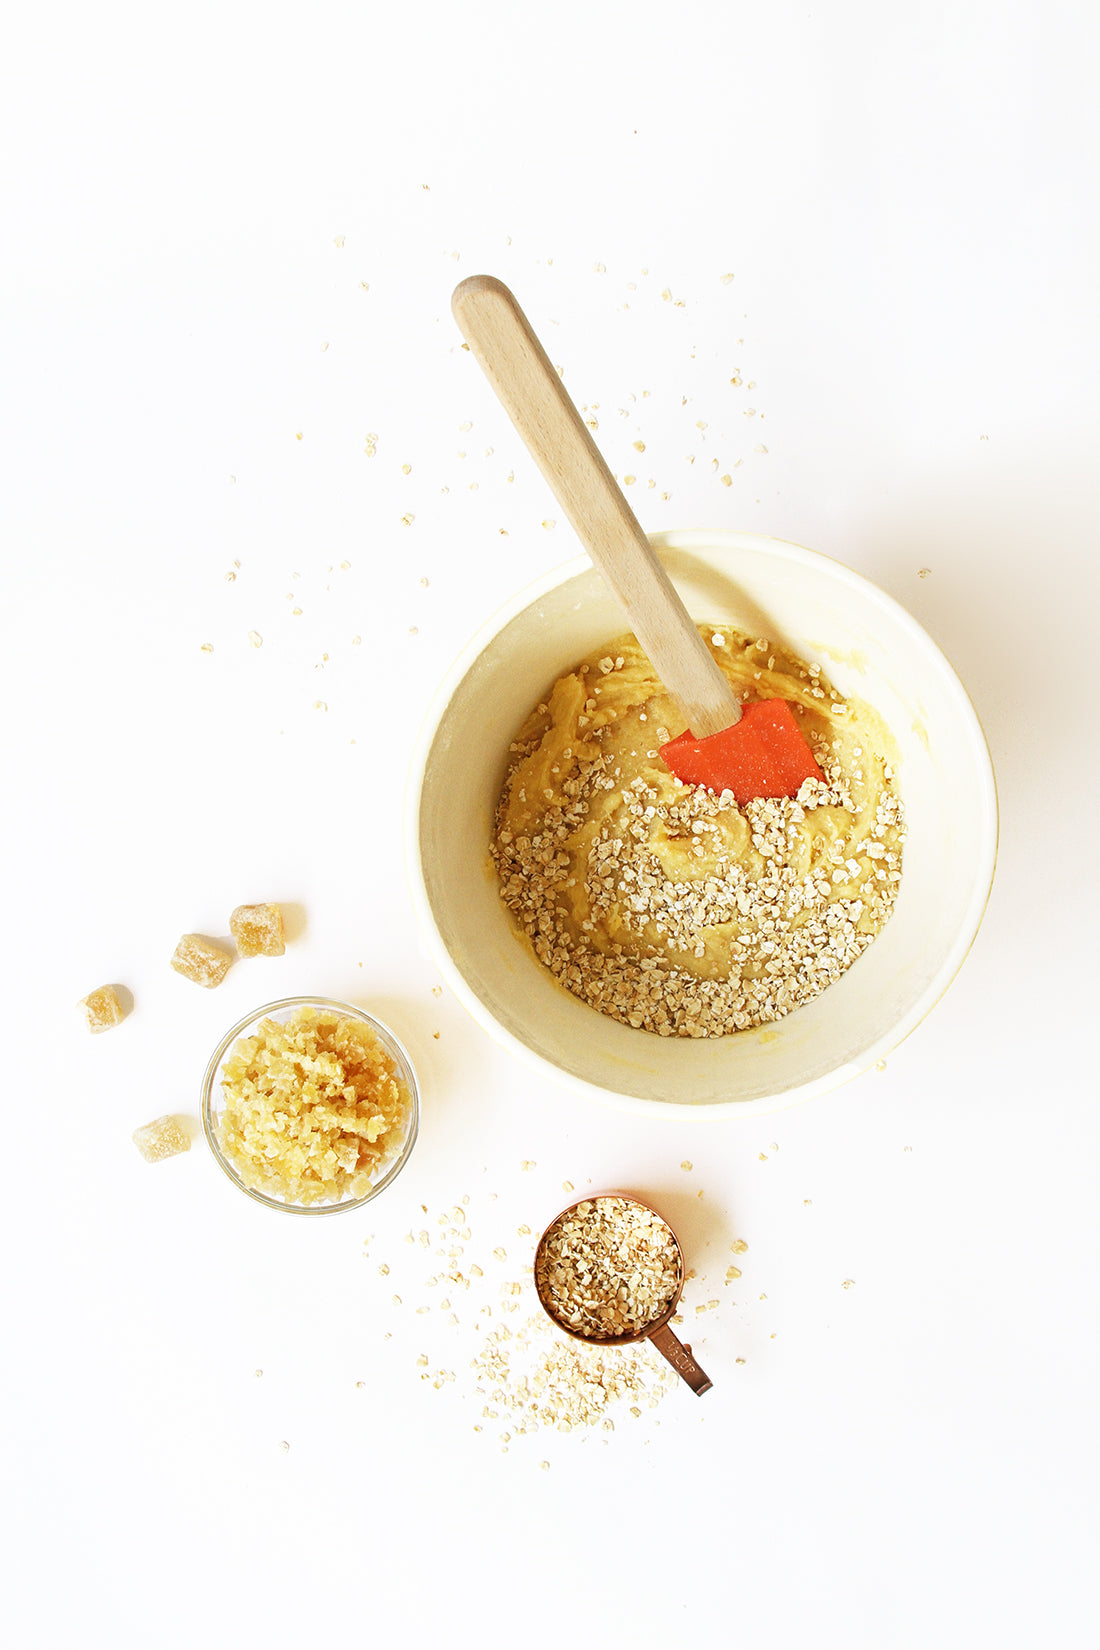 Image of a bowl of Miss Jones Baking Co Ginger Oatmeal Drop Cookies batter next to a measuring cup of oats and a bowl of ginger